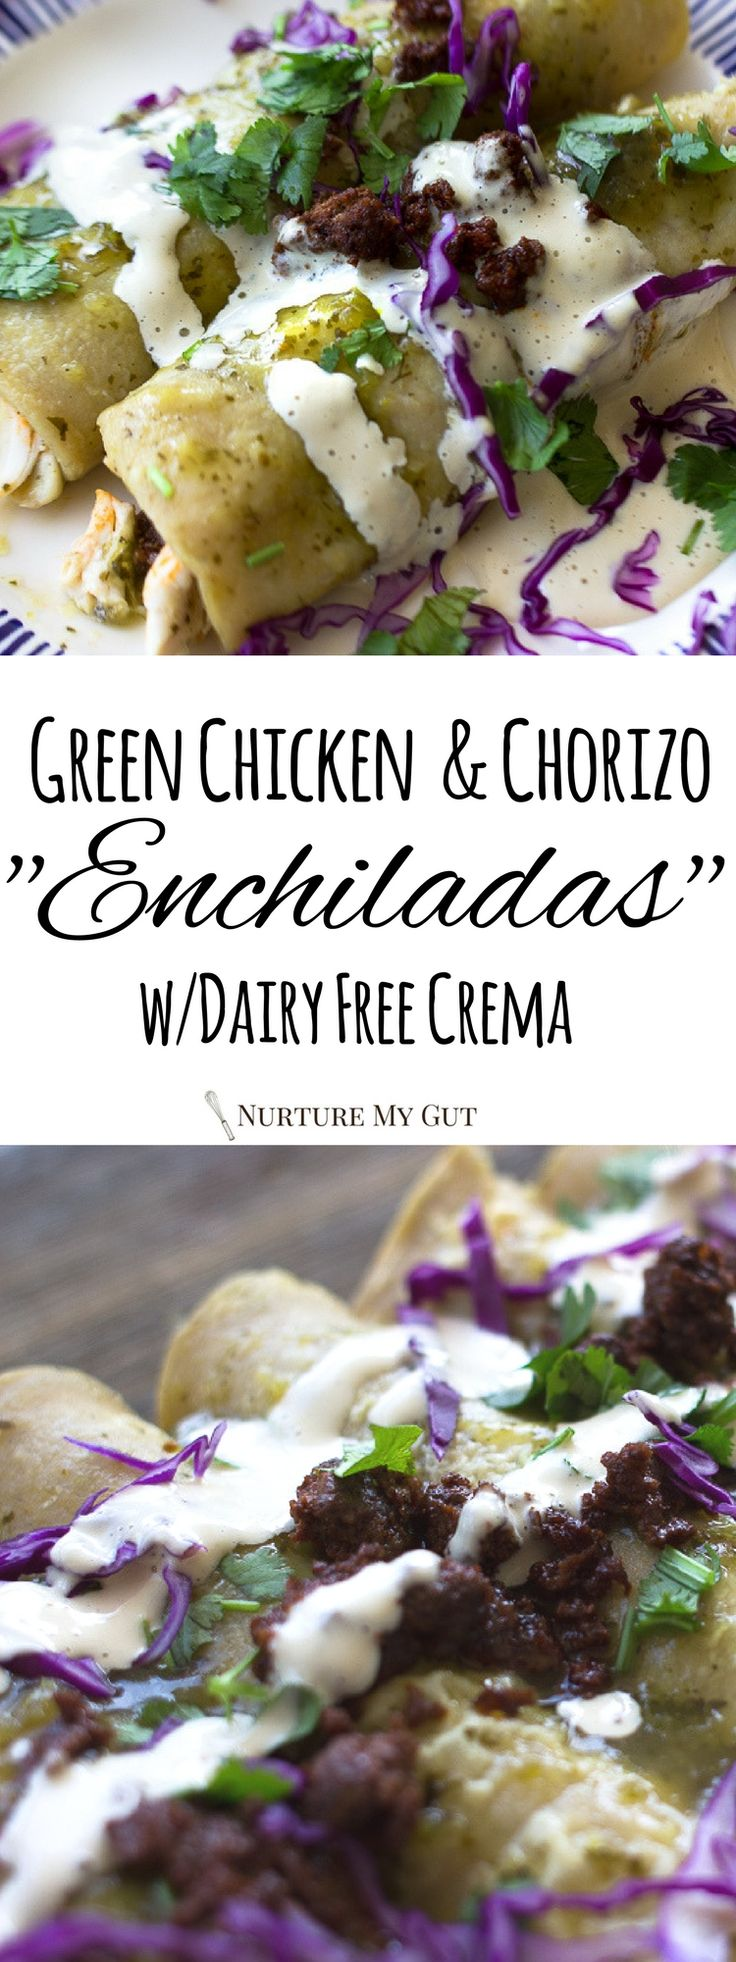 Green Chicken and Chorizo Enchiladas with Dairy Free Crema.  Best Green enchiladas!  Full of flavor, ready to wow!  Gluten Free, grain free option, dairy free.